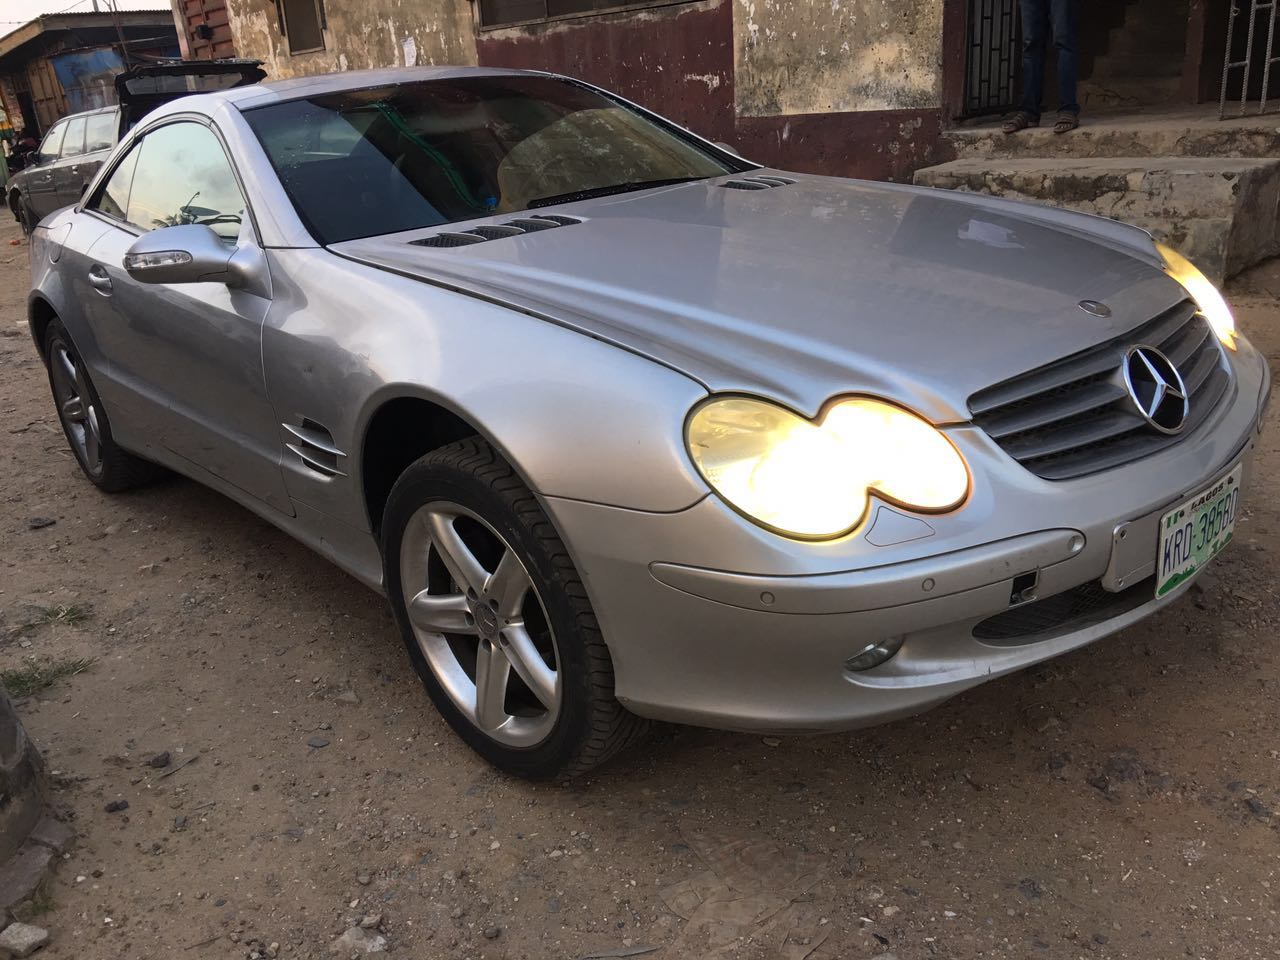 Barely used hardtop convertible 06 mercedes benz sl500 for Mercedes benz convertible price